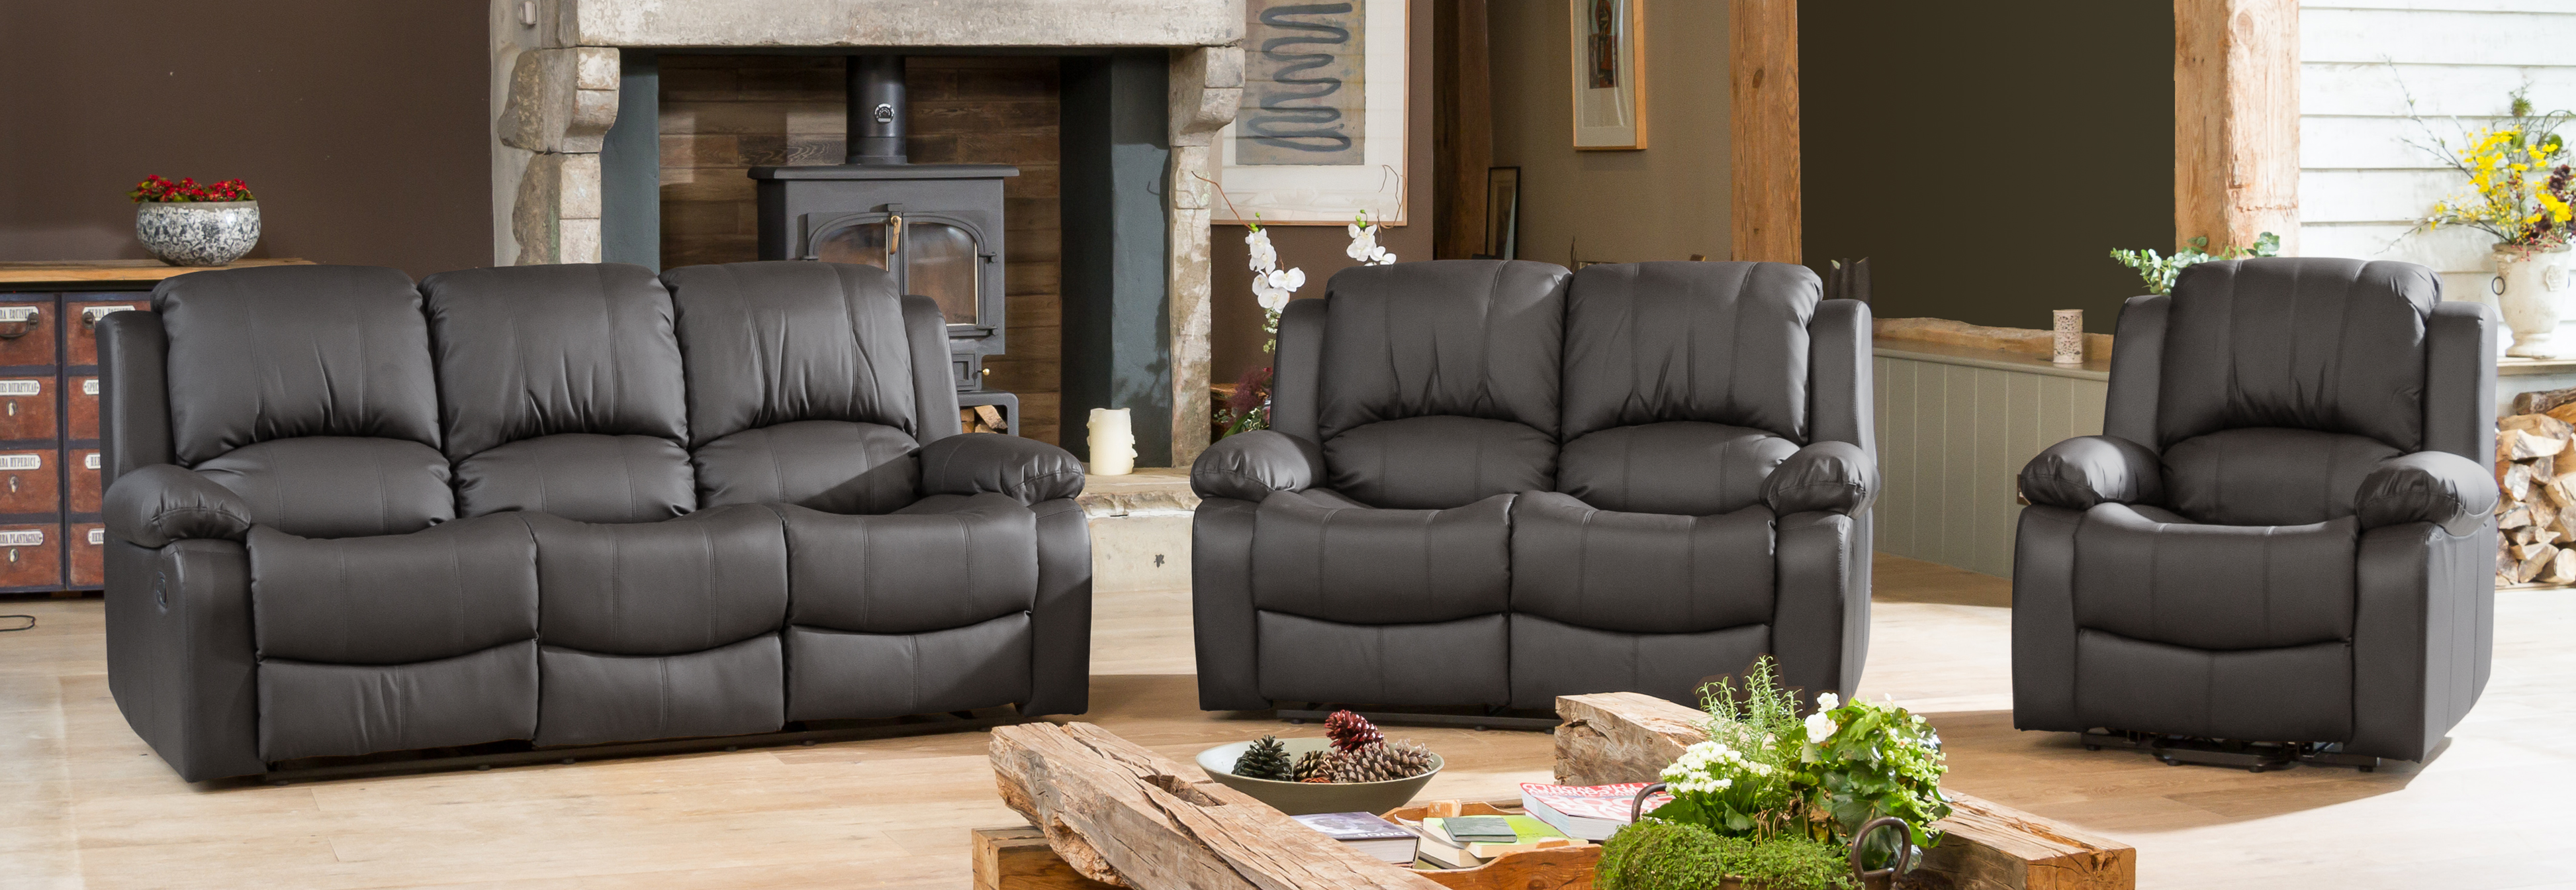 Burghley Reclining Suite grey